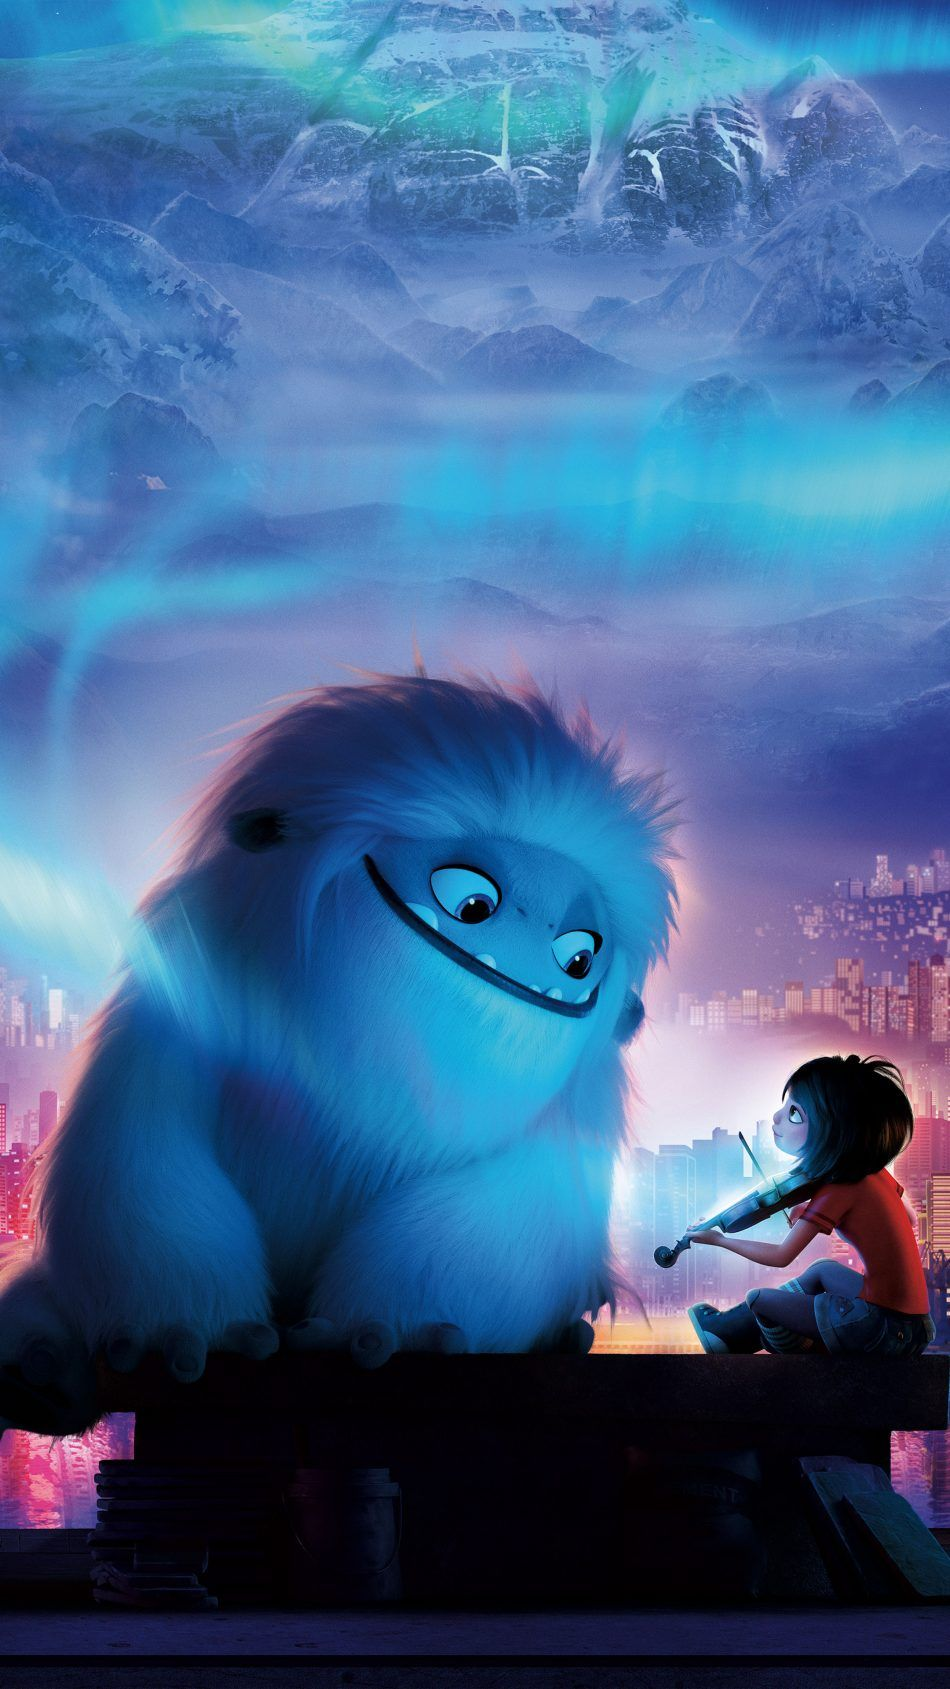 Abominable Animation 2019 Adventure Movie wallpapers